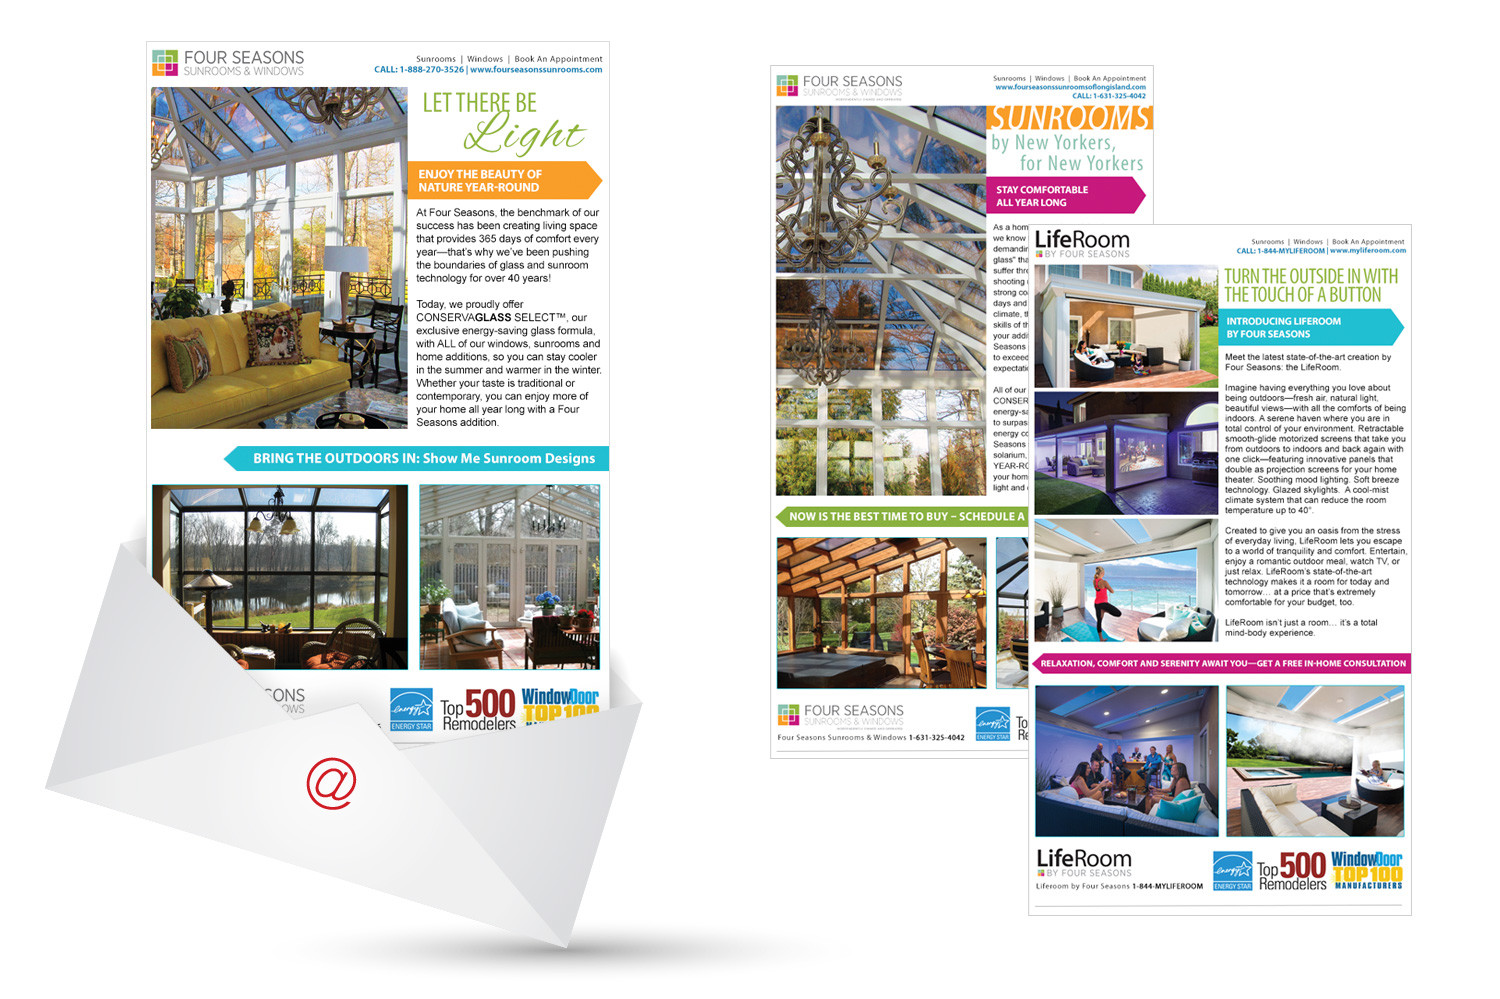 FourSeasons_EmailCampaigns